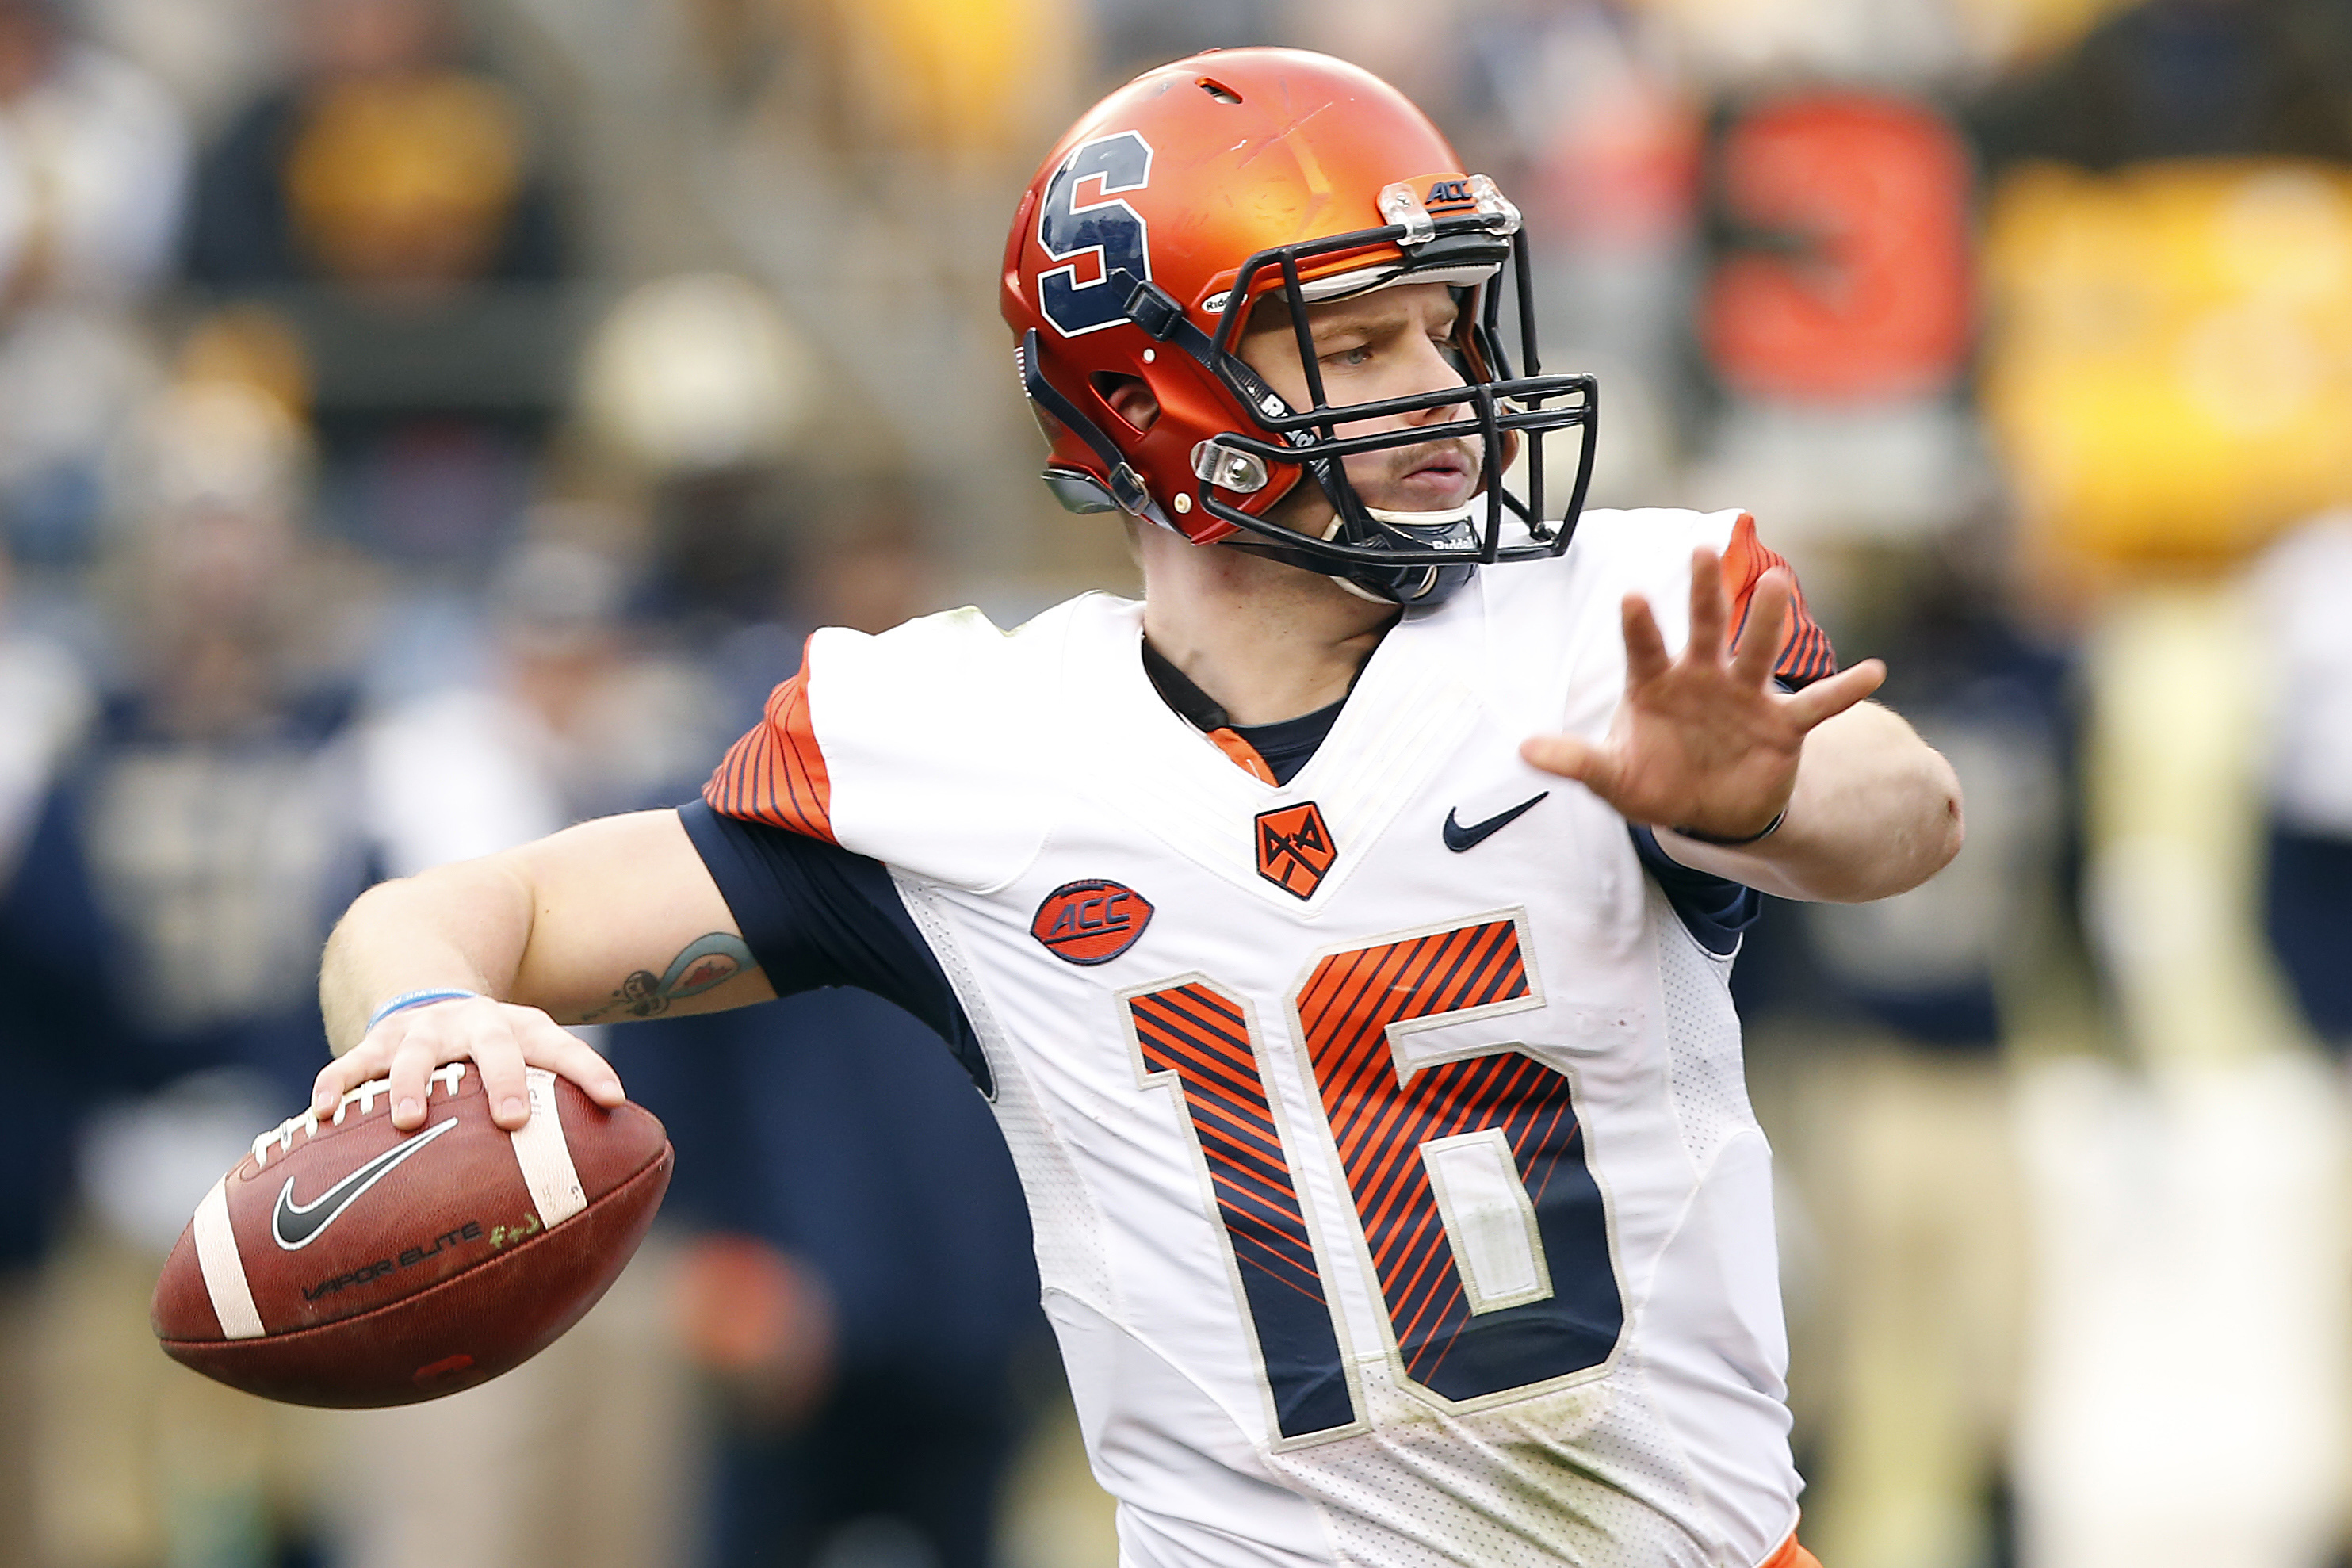 Syracuse quarterback Zack Mahoney (16) throws a pass against Pittsburgh during the first half of an NCAA college football game in Pittsburgh, Saturday, Nov. 26, 2016.(AP Photo/Jared Wickerham)